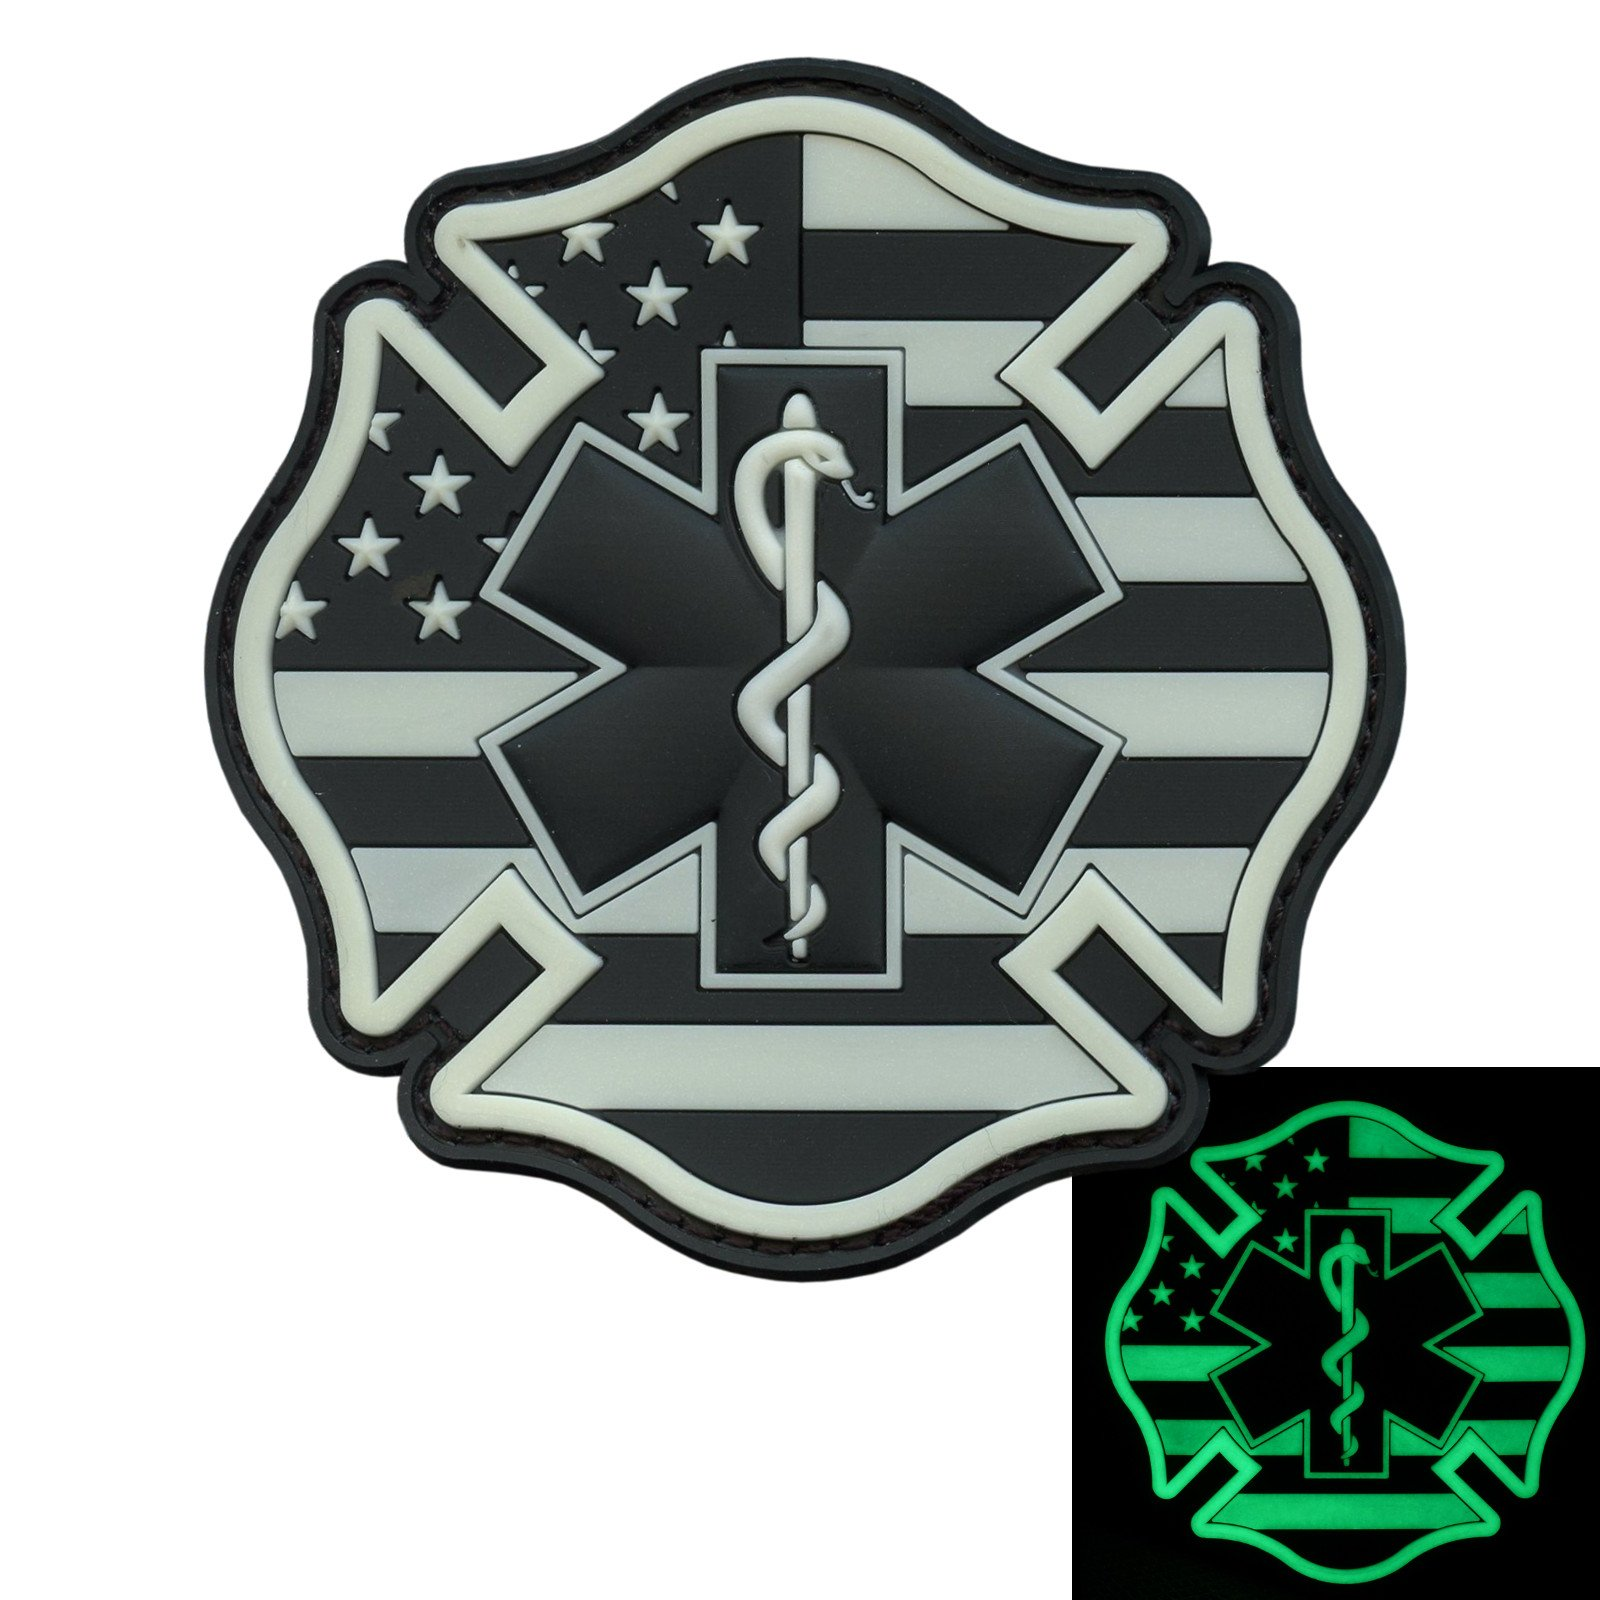 Glow Dark EMS EMT Fire Fighter Department USA American Flag Rescue Firemen Paramedic Medic Morale PV